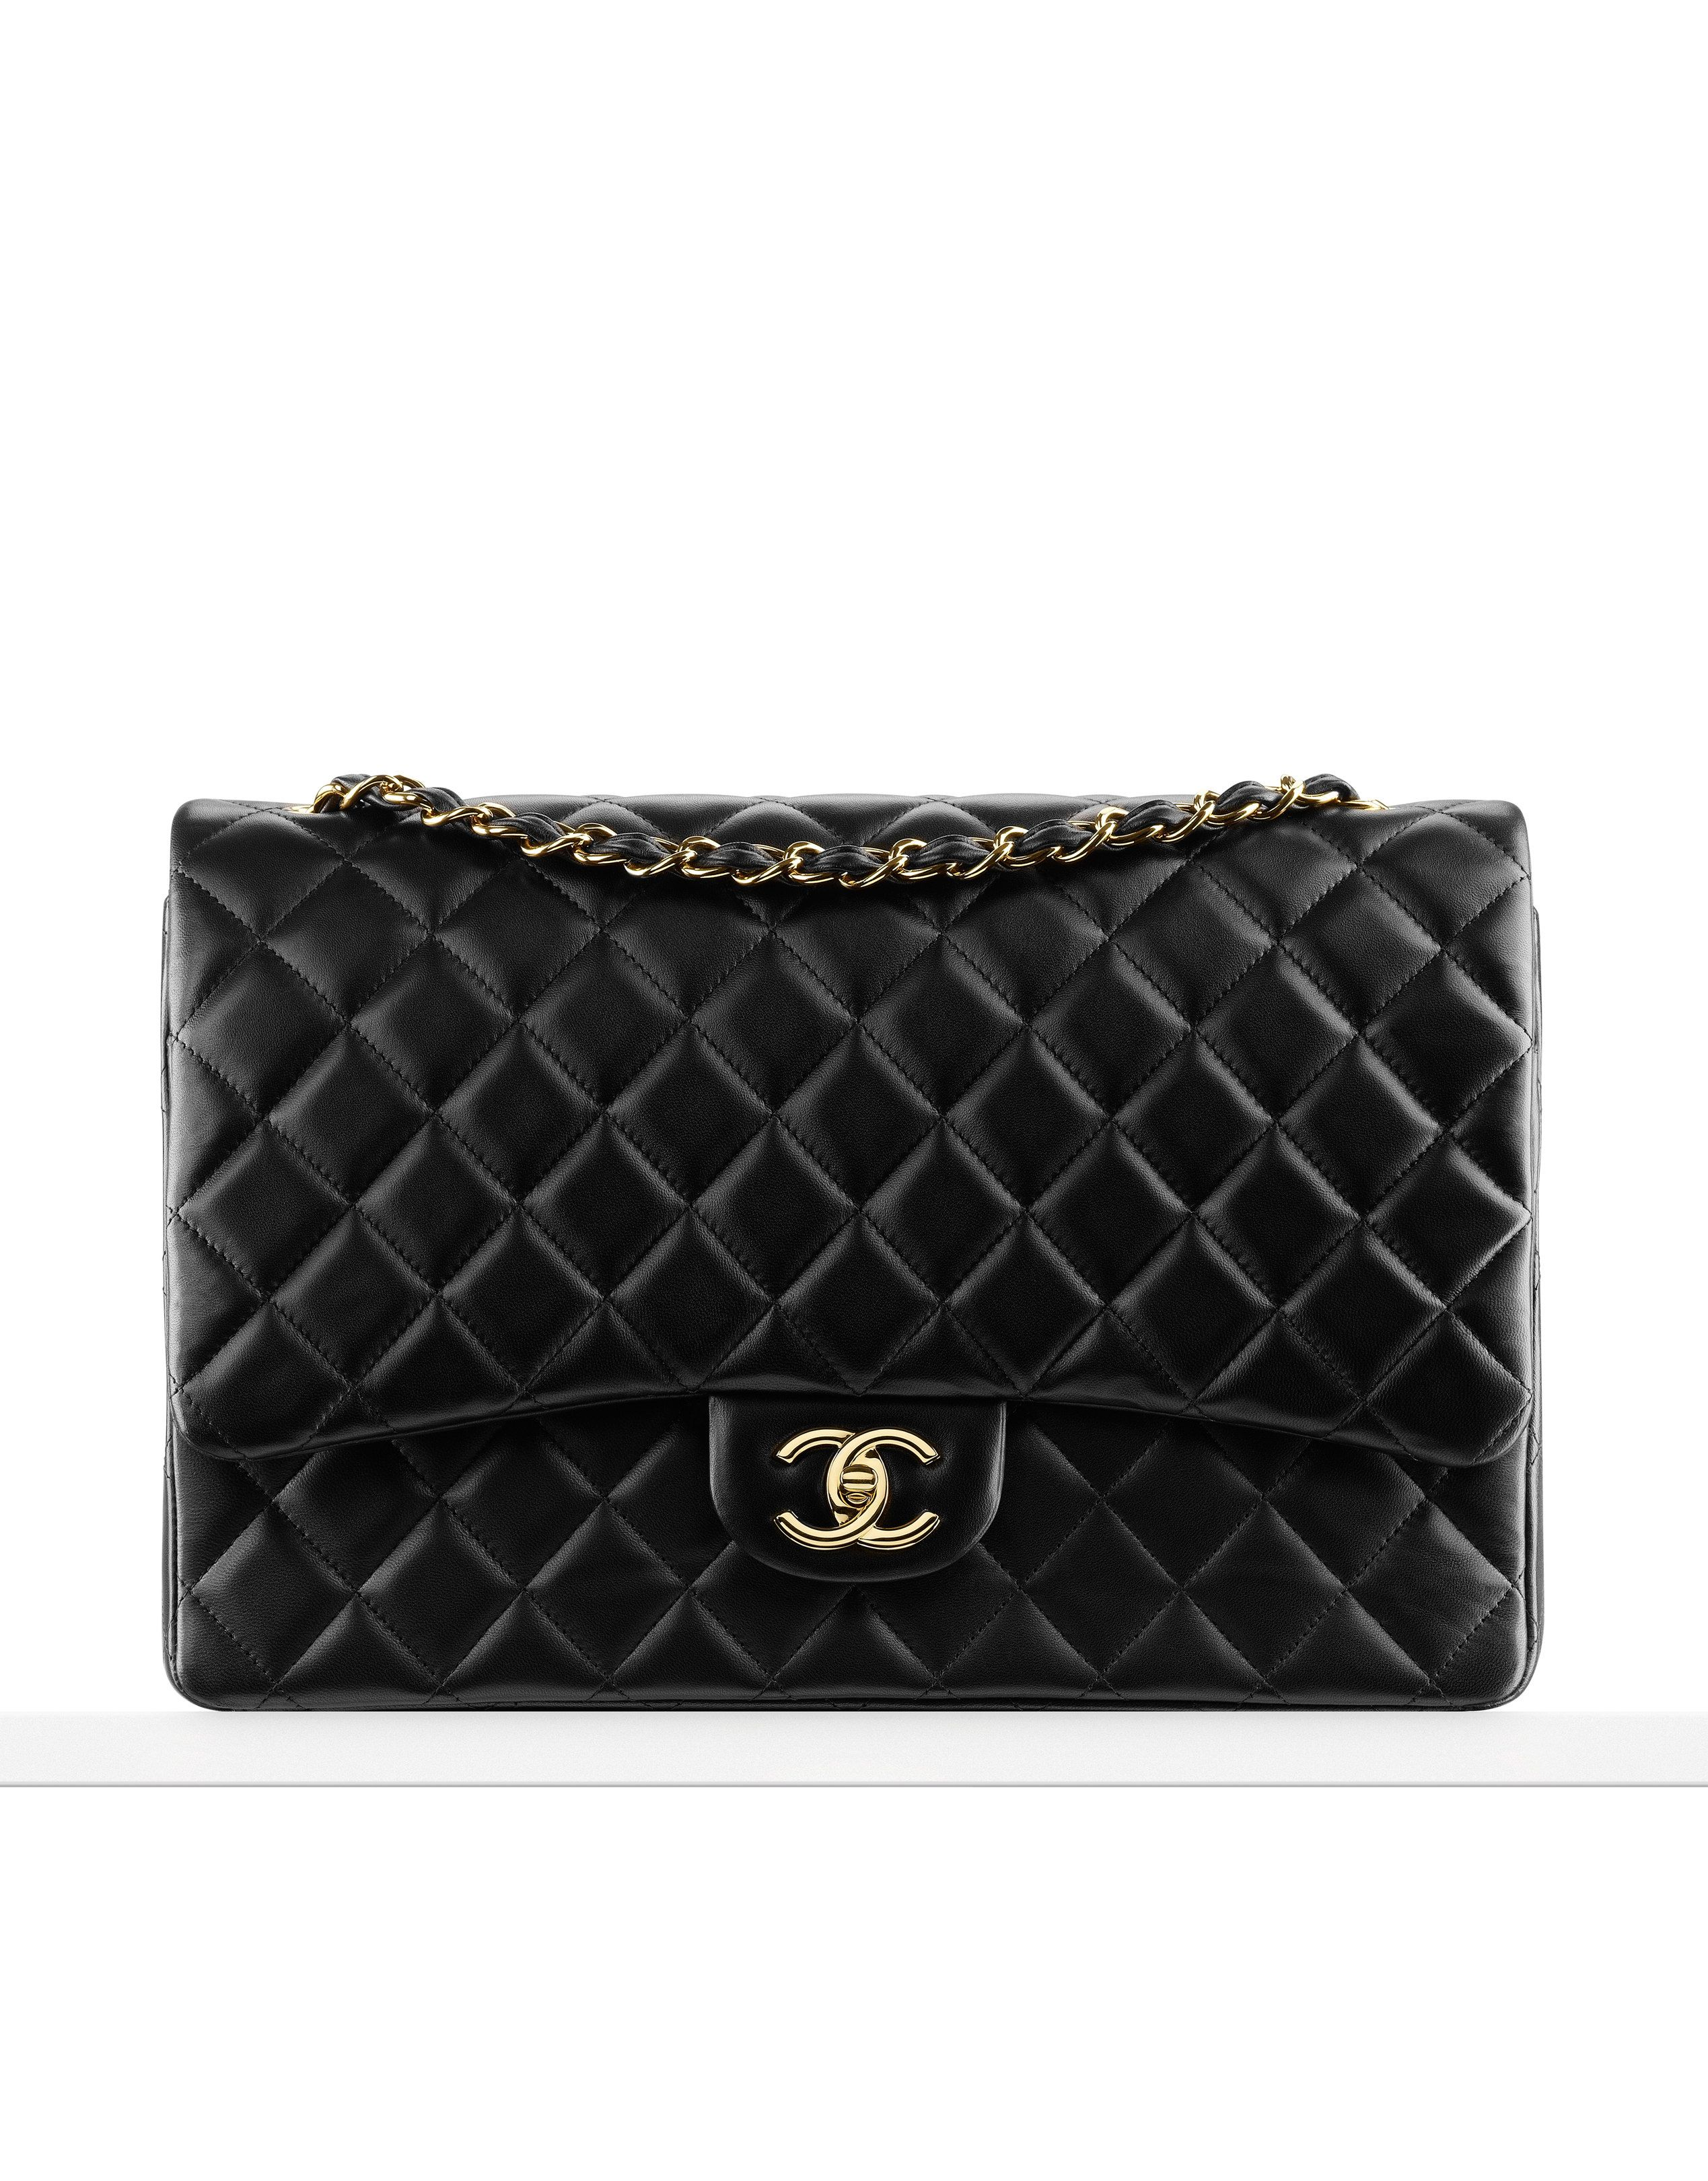 09b4fdb24189 Classics - Large classic flap bag in quilted lambskin. Also available in silver  metal